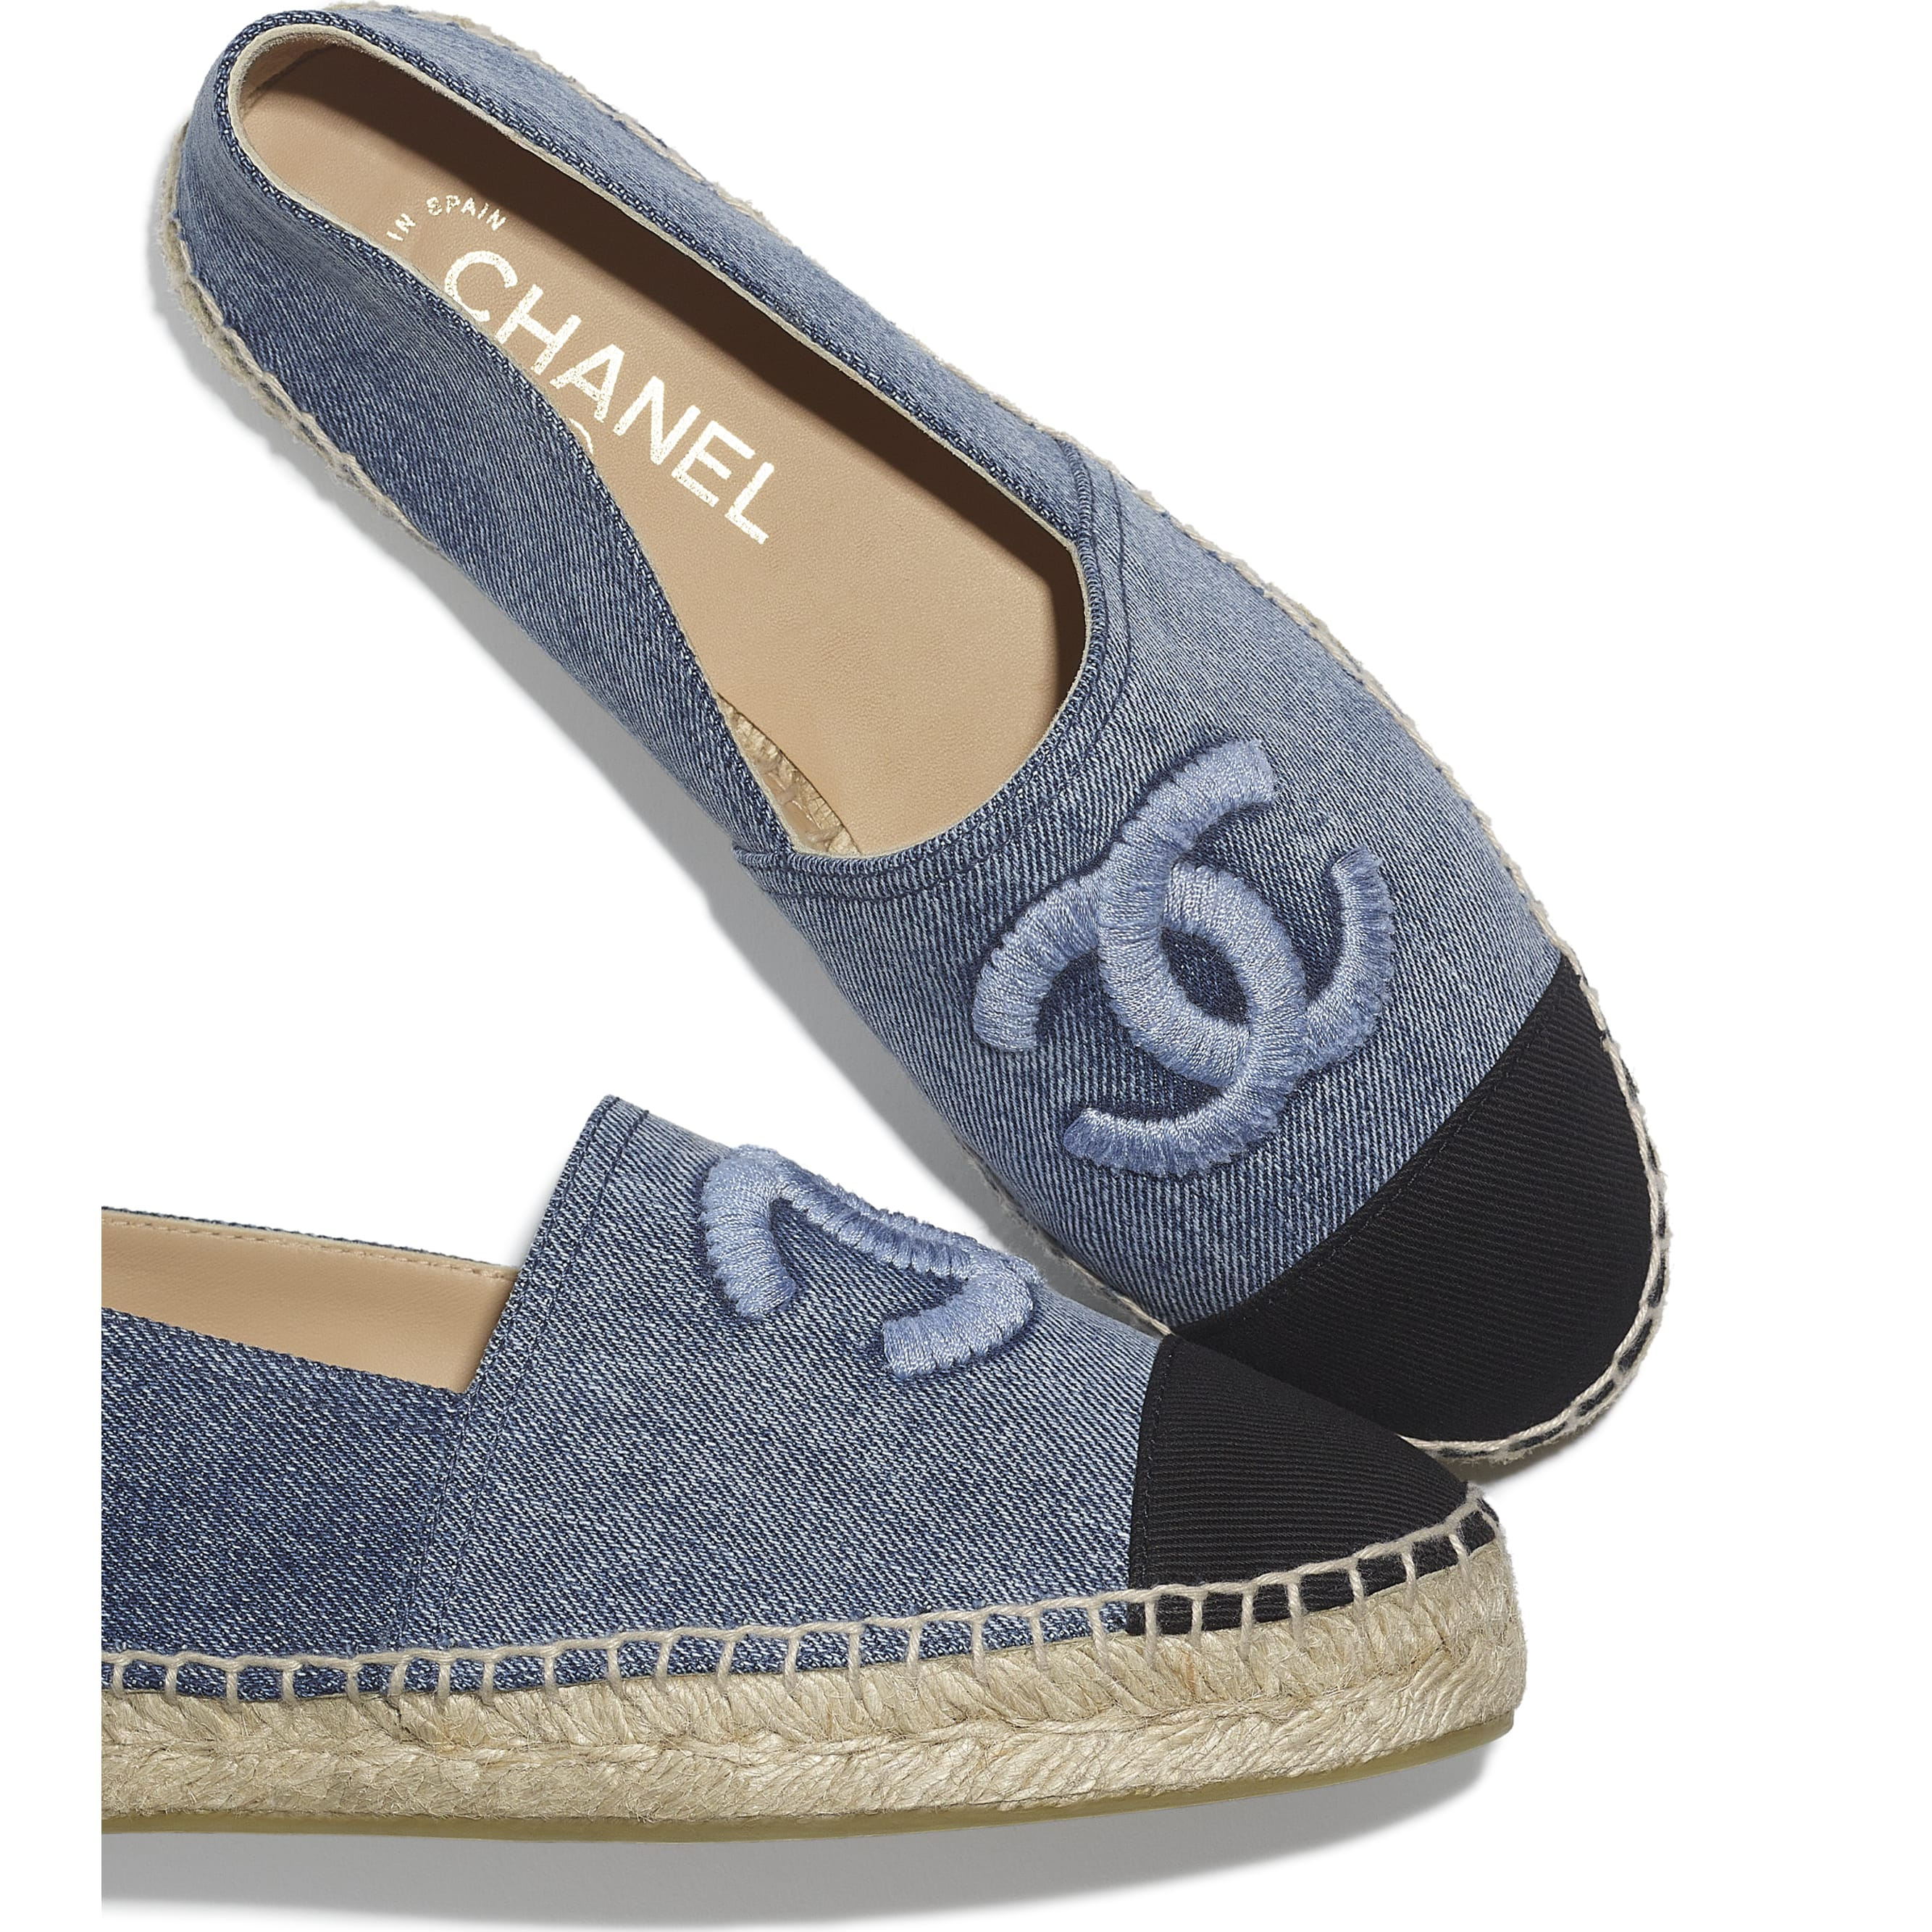 Espadrilles - Blue & Black - Denim - CHANEL - Extra view - see standard sized version